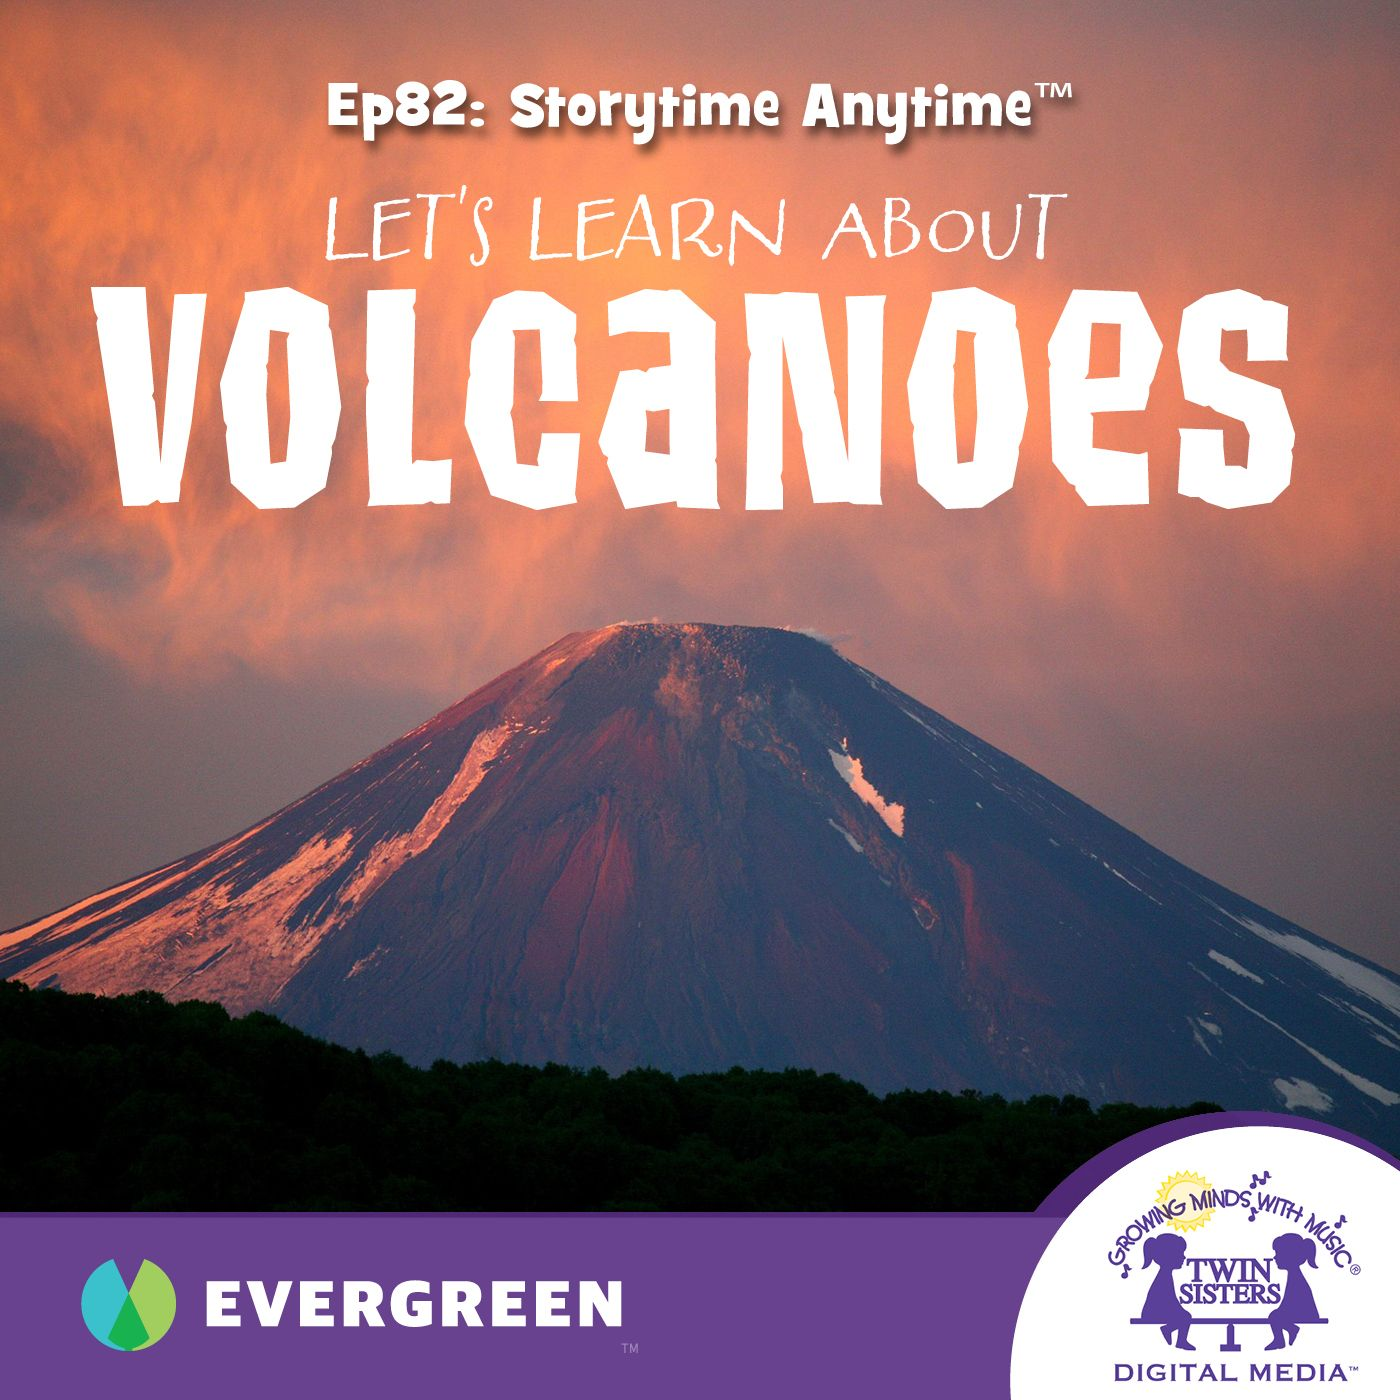 Let's Learn About Volcanoes